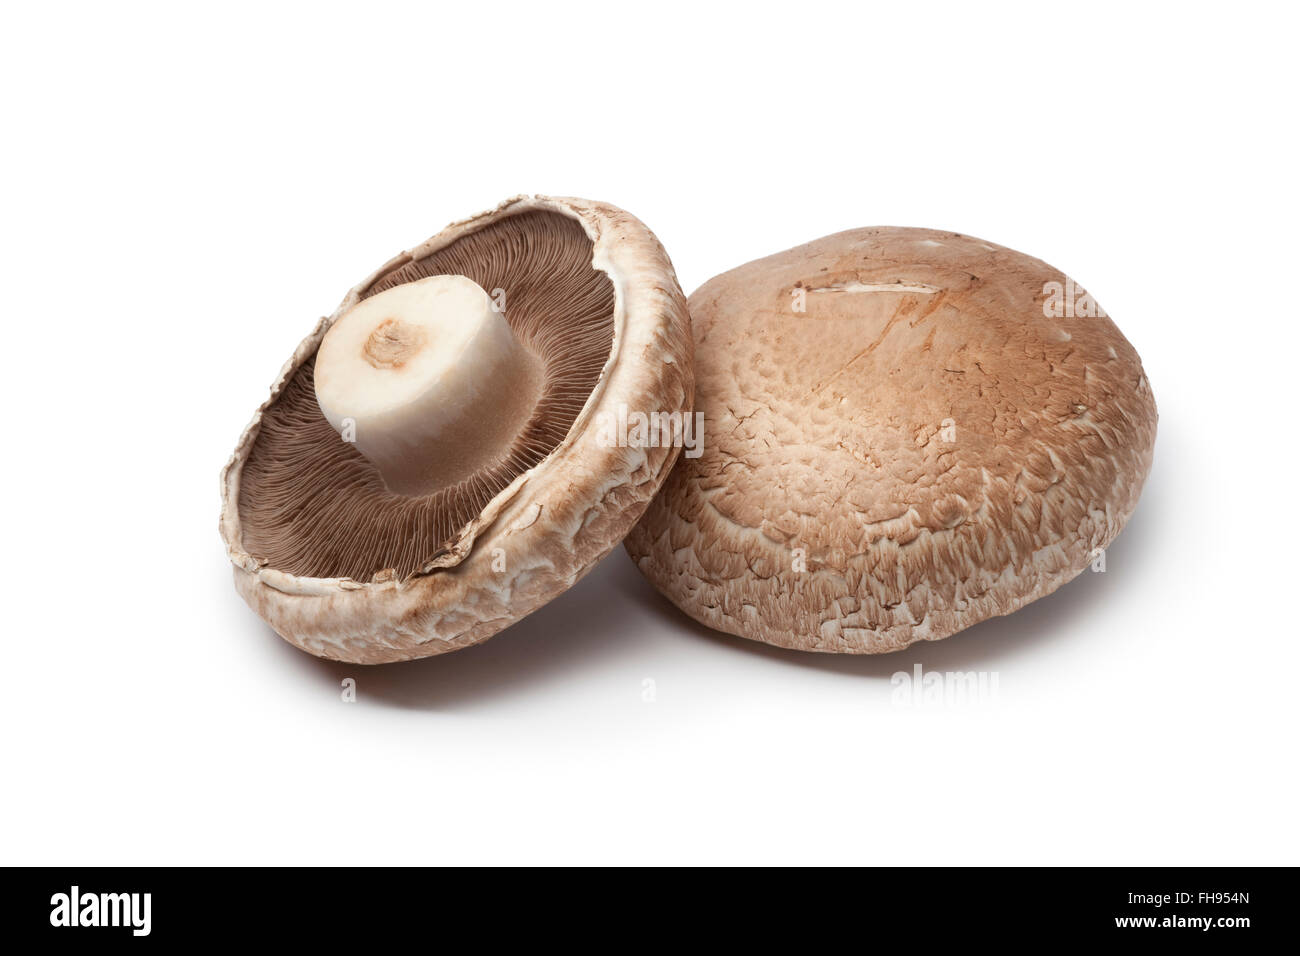 Fresh Raw Portobello Mushrooms Isolated On White Background Stock Photo Alamy